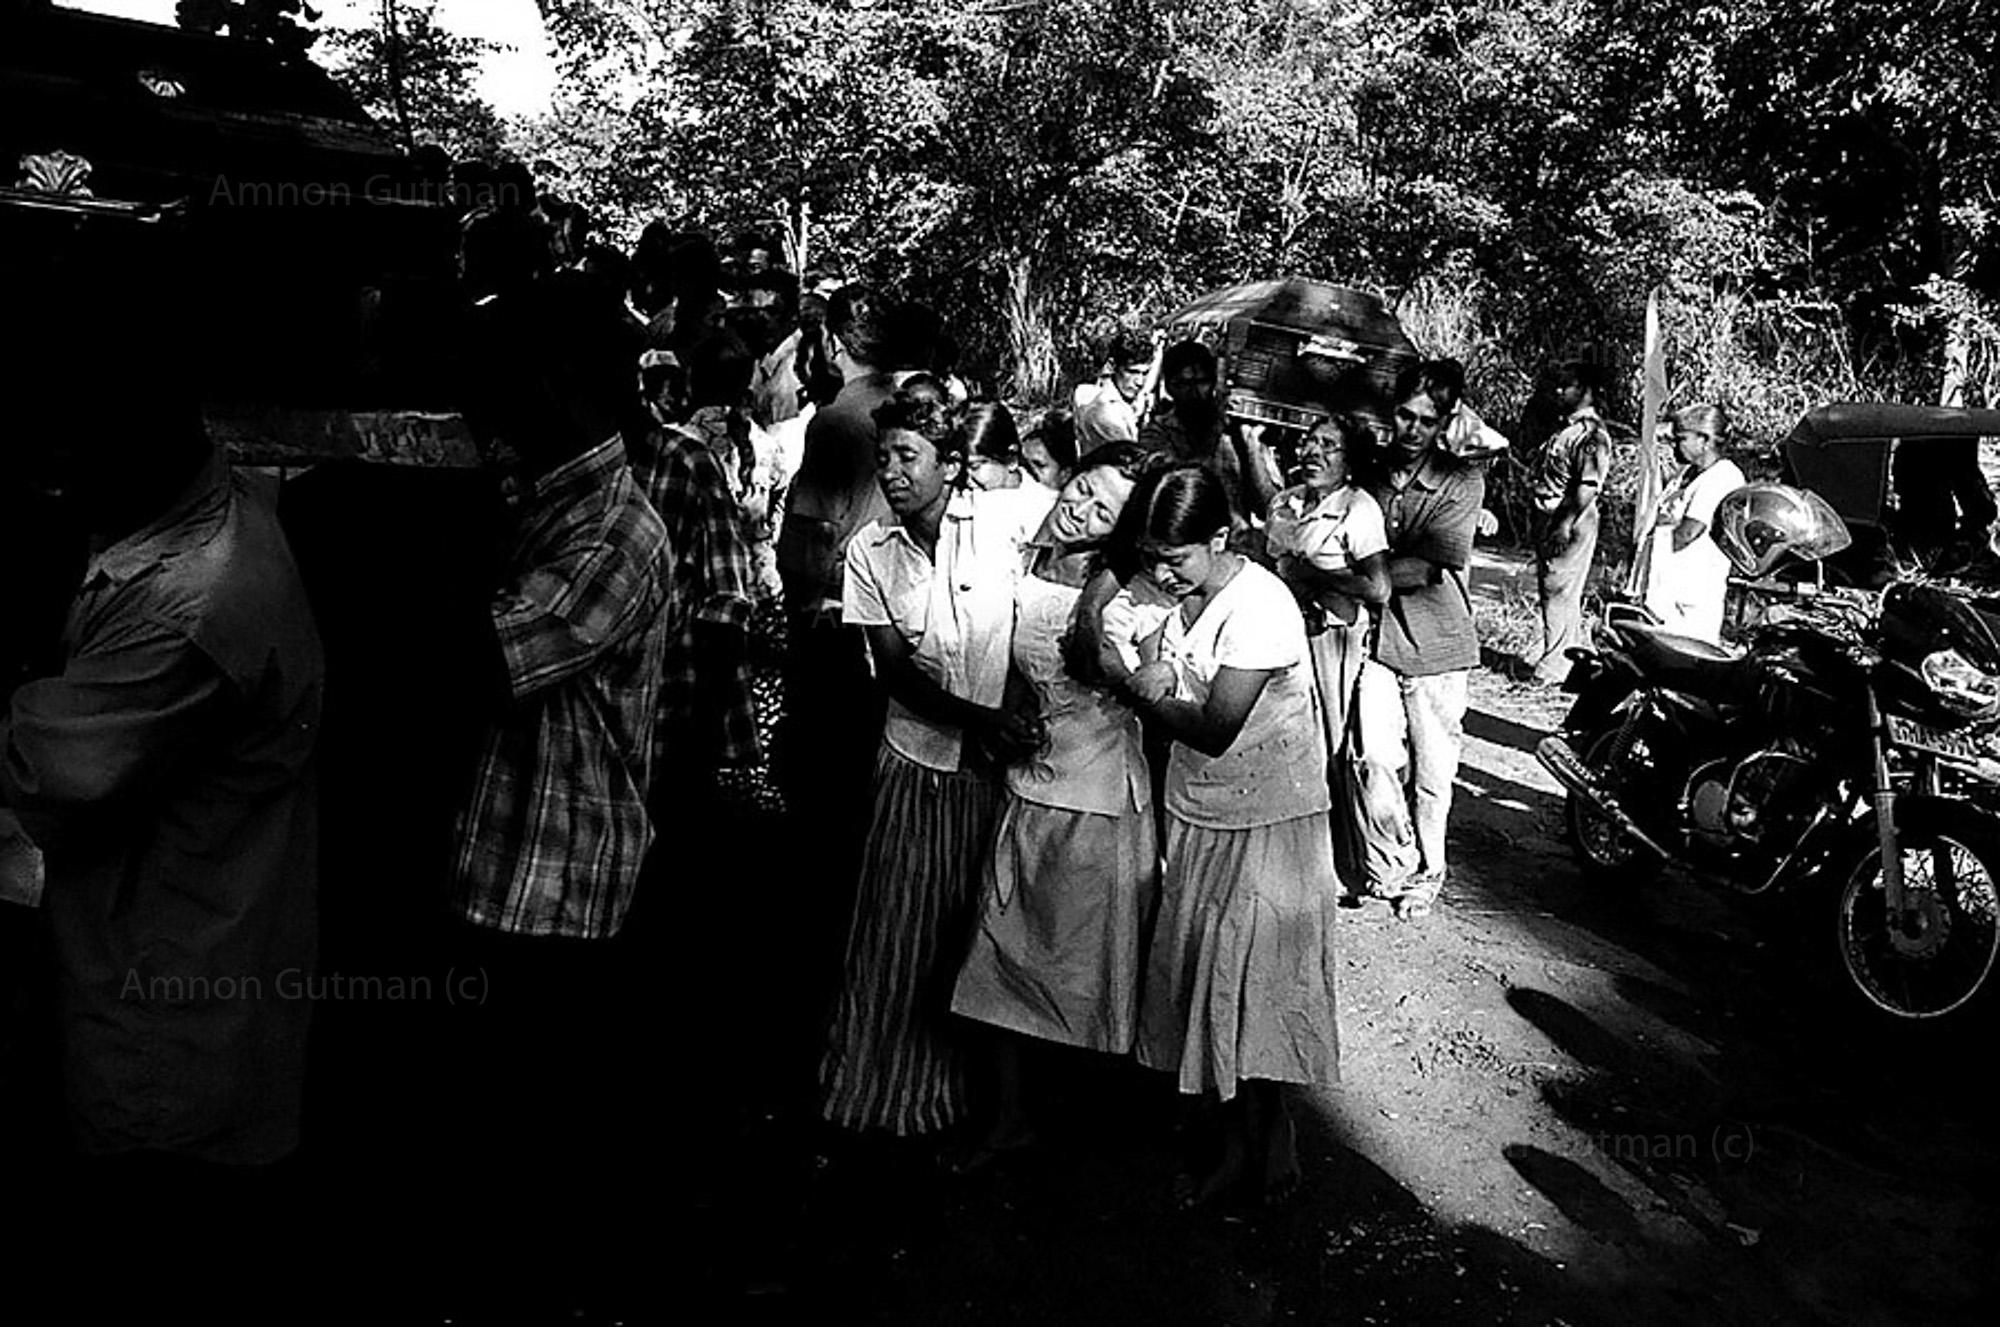 family members of Sinhalese civilians who were killed by a roadside claymore mine explosion made allegedly  by LTTE carders , mourn their loved ones death during a mass funeral for 26 people killed in the incident, Buttala, South Sri Lanka